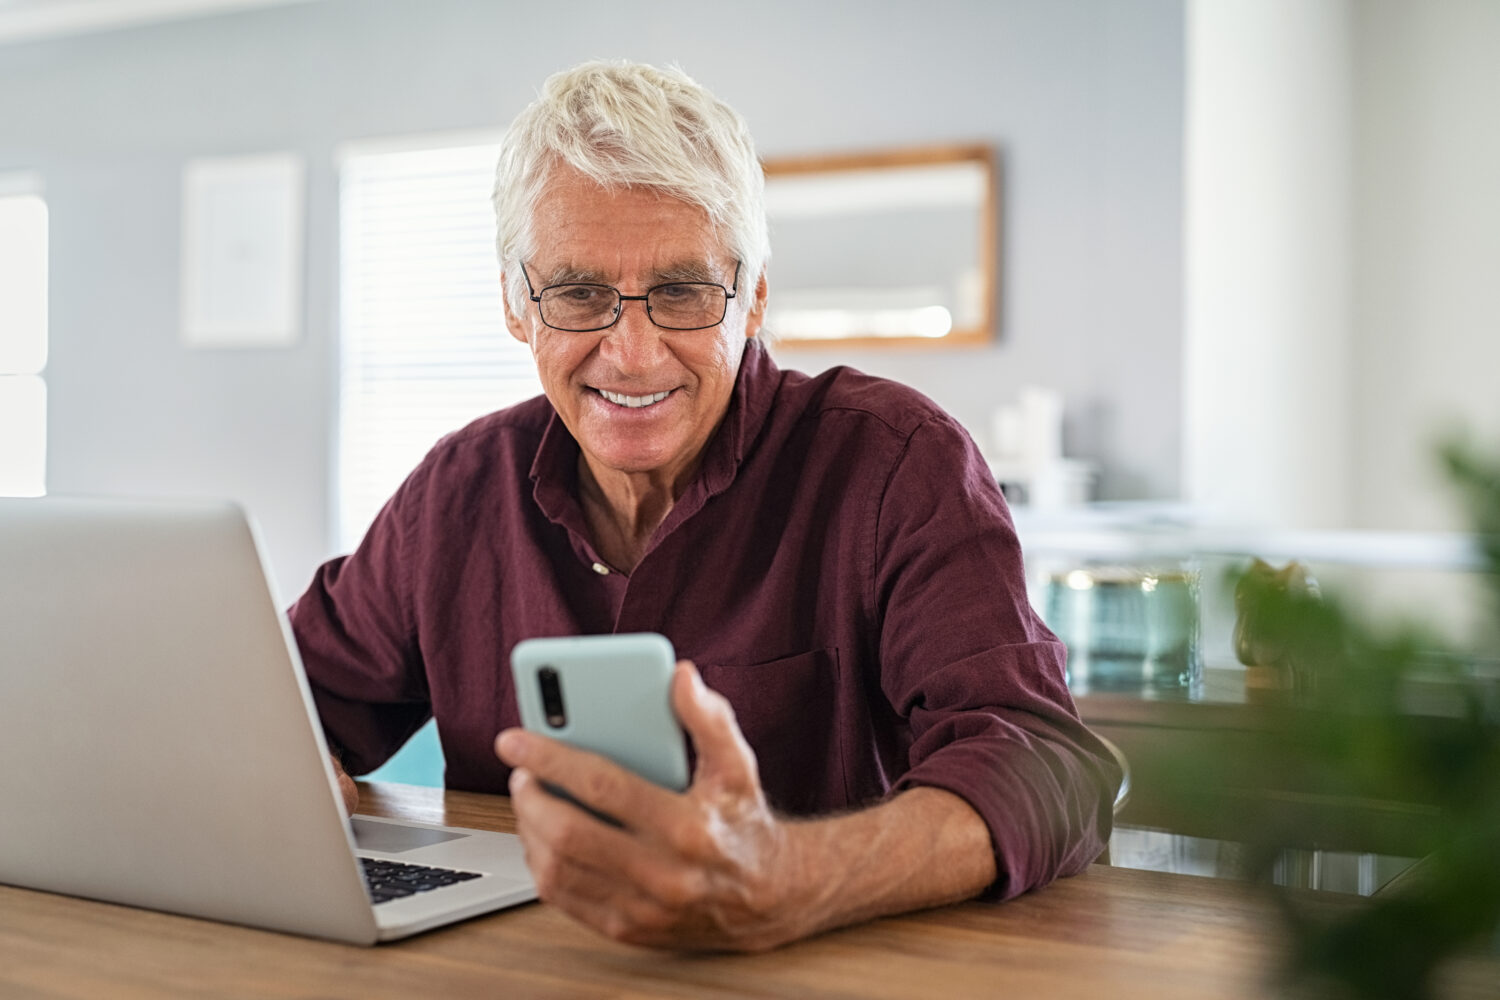 older male working at a laptop and smiling down at his phone